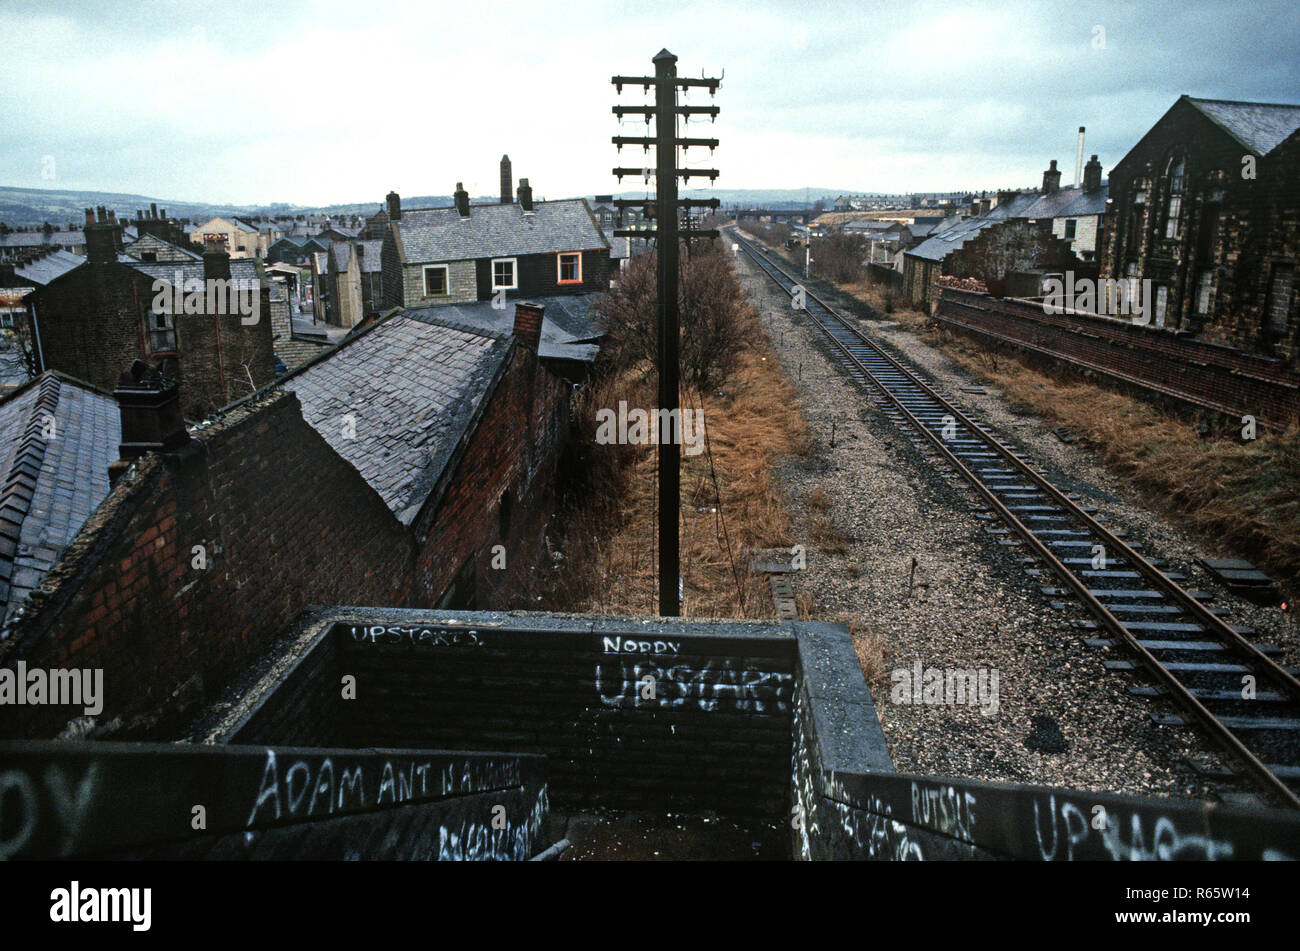 British Rail Preston to Colne railway line, Lancashire, Great Britain Stock Photo